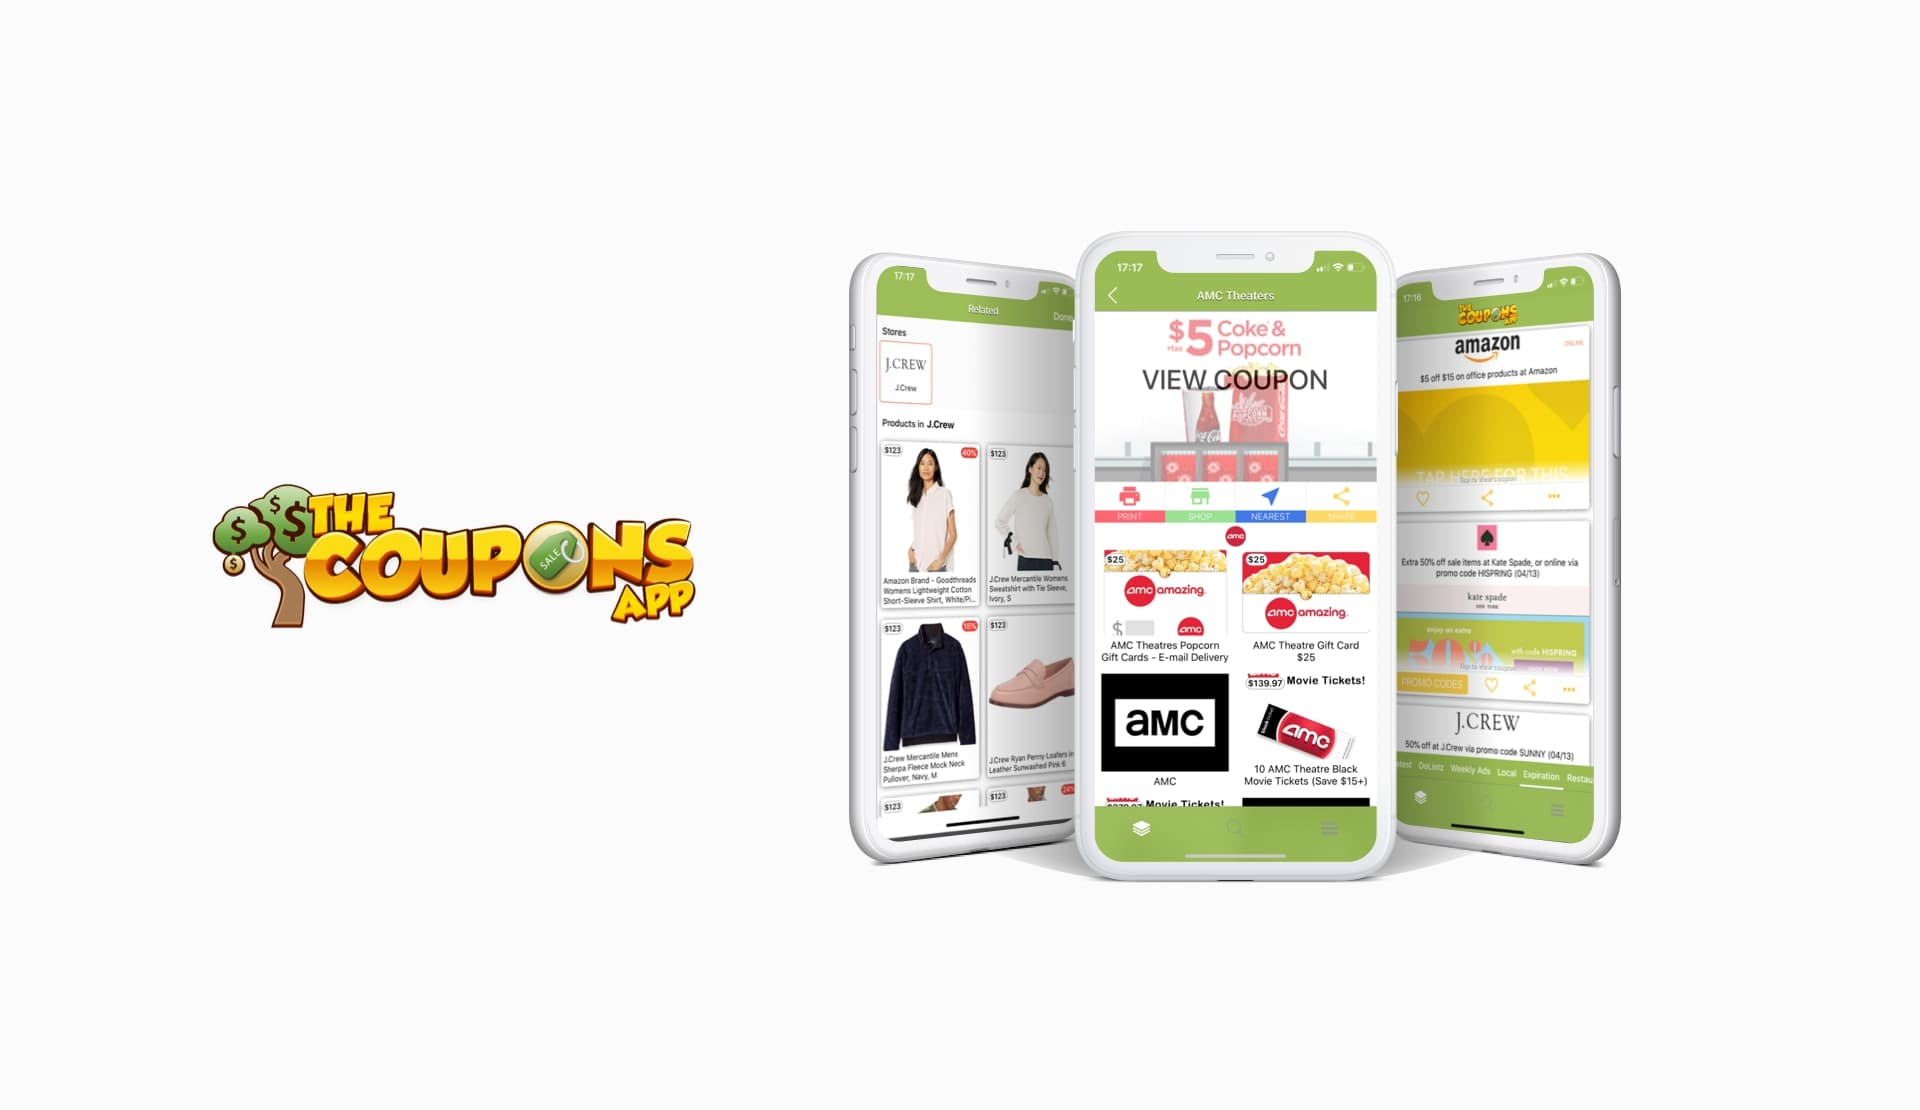 The Coupons shopping app